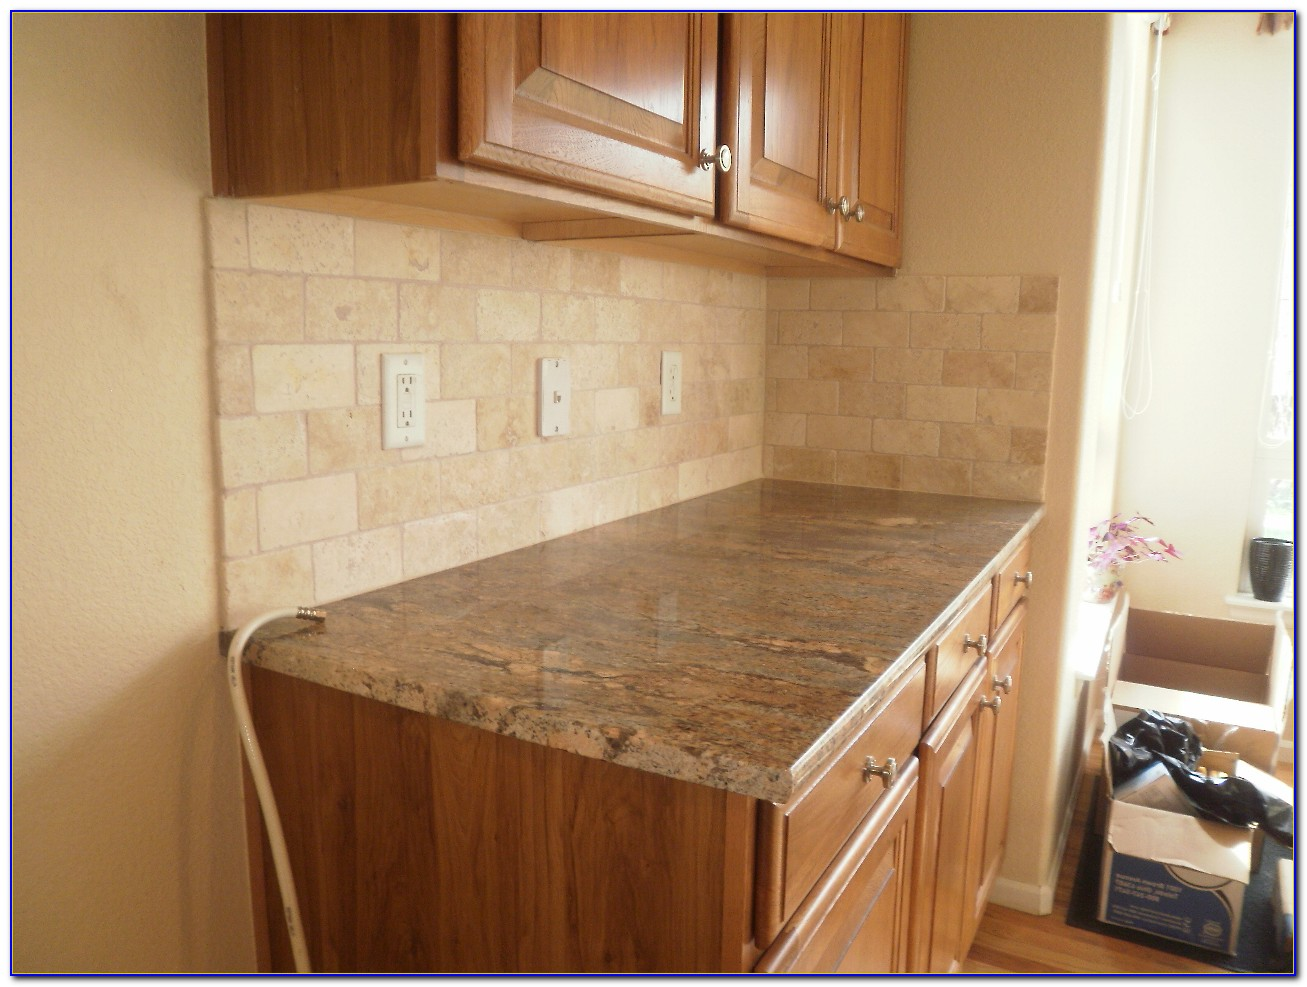 3x6 Travertine Subway Tile Backsplash